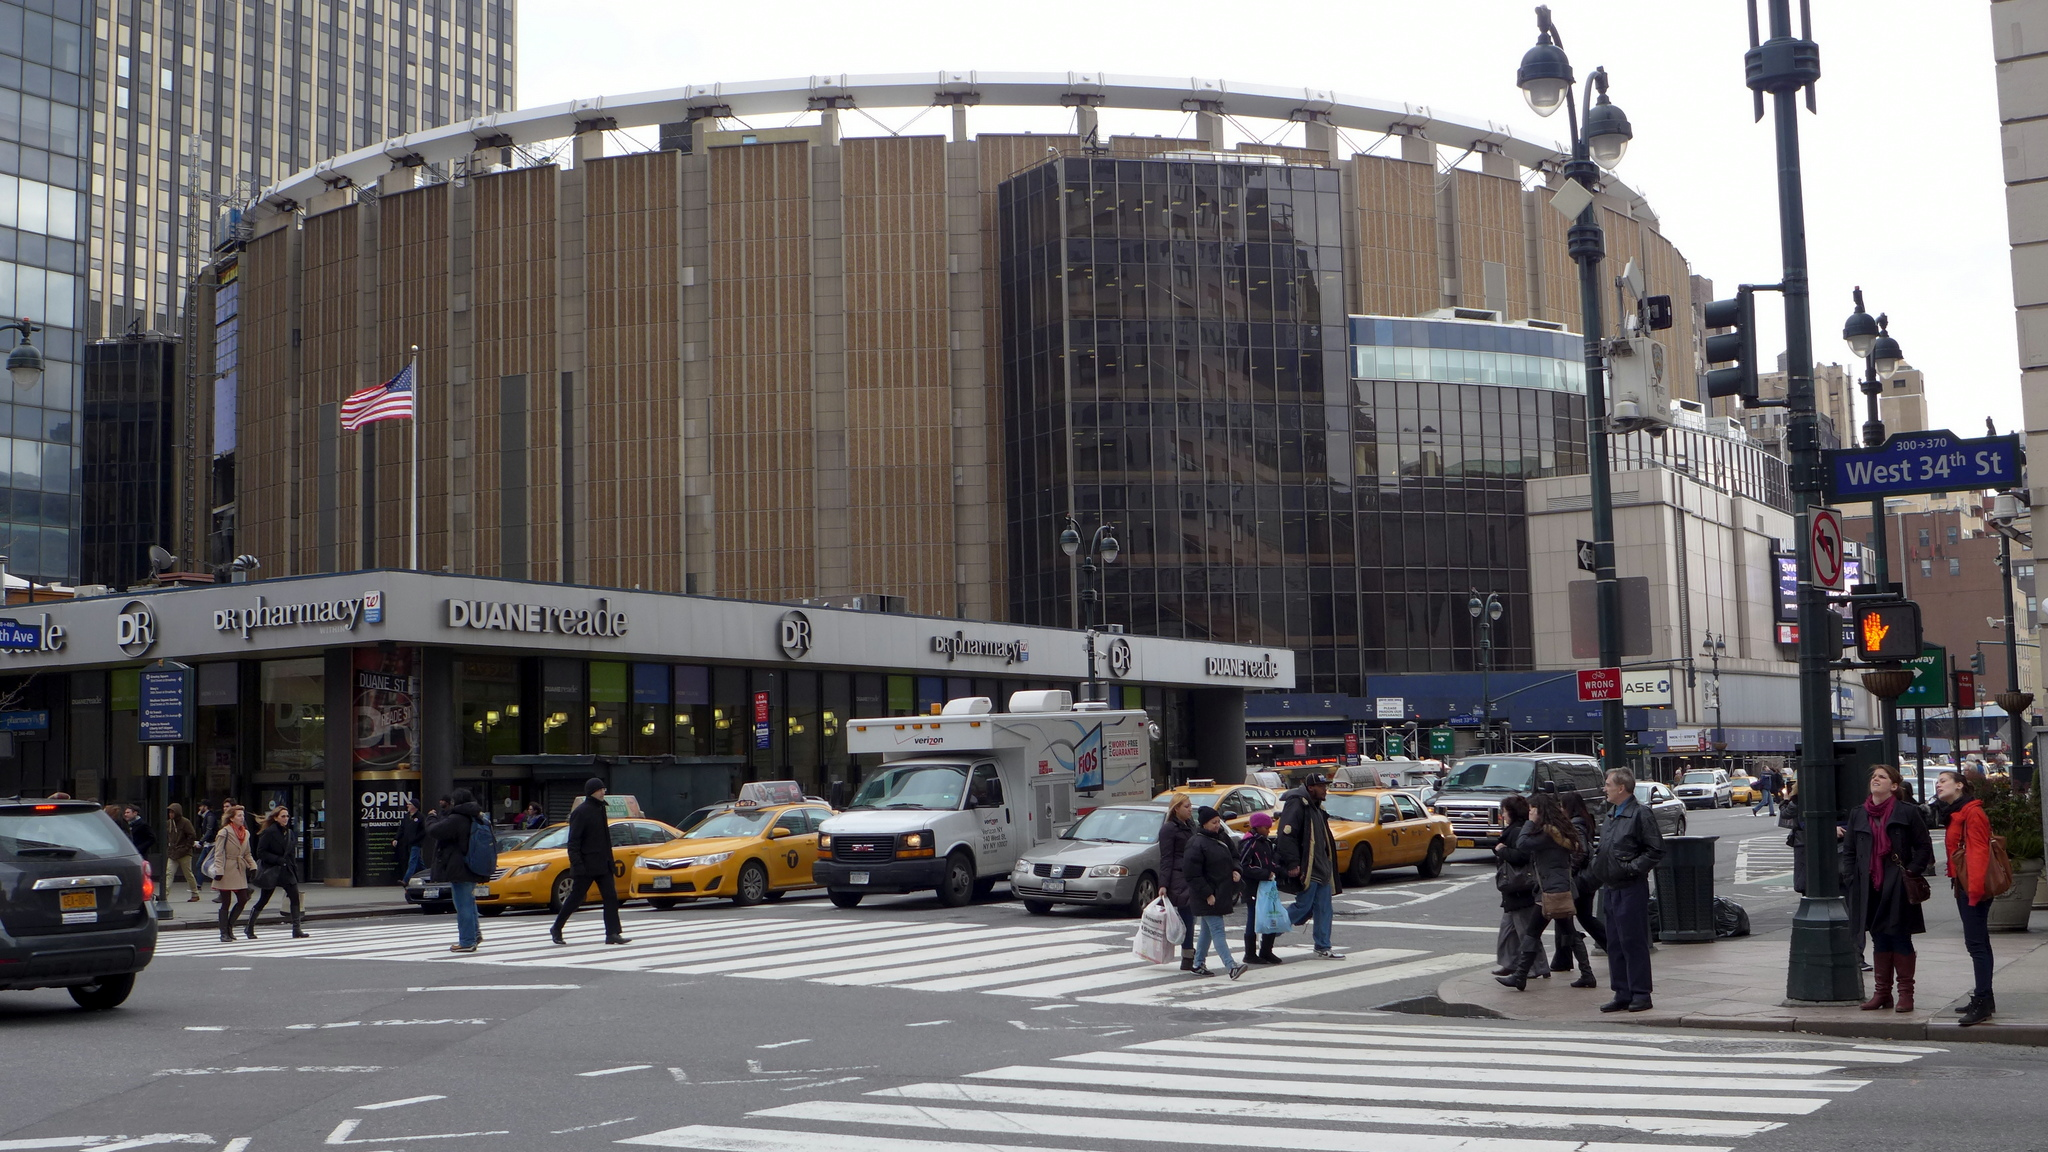 madison square garden launches behind the scenes tour - Madison Square Garden Jobs